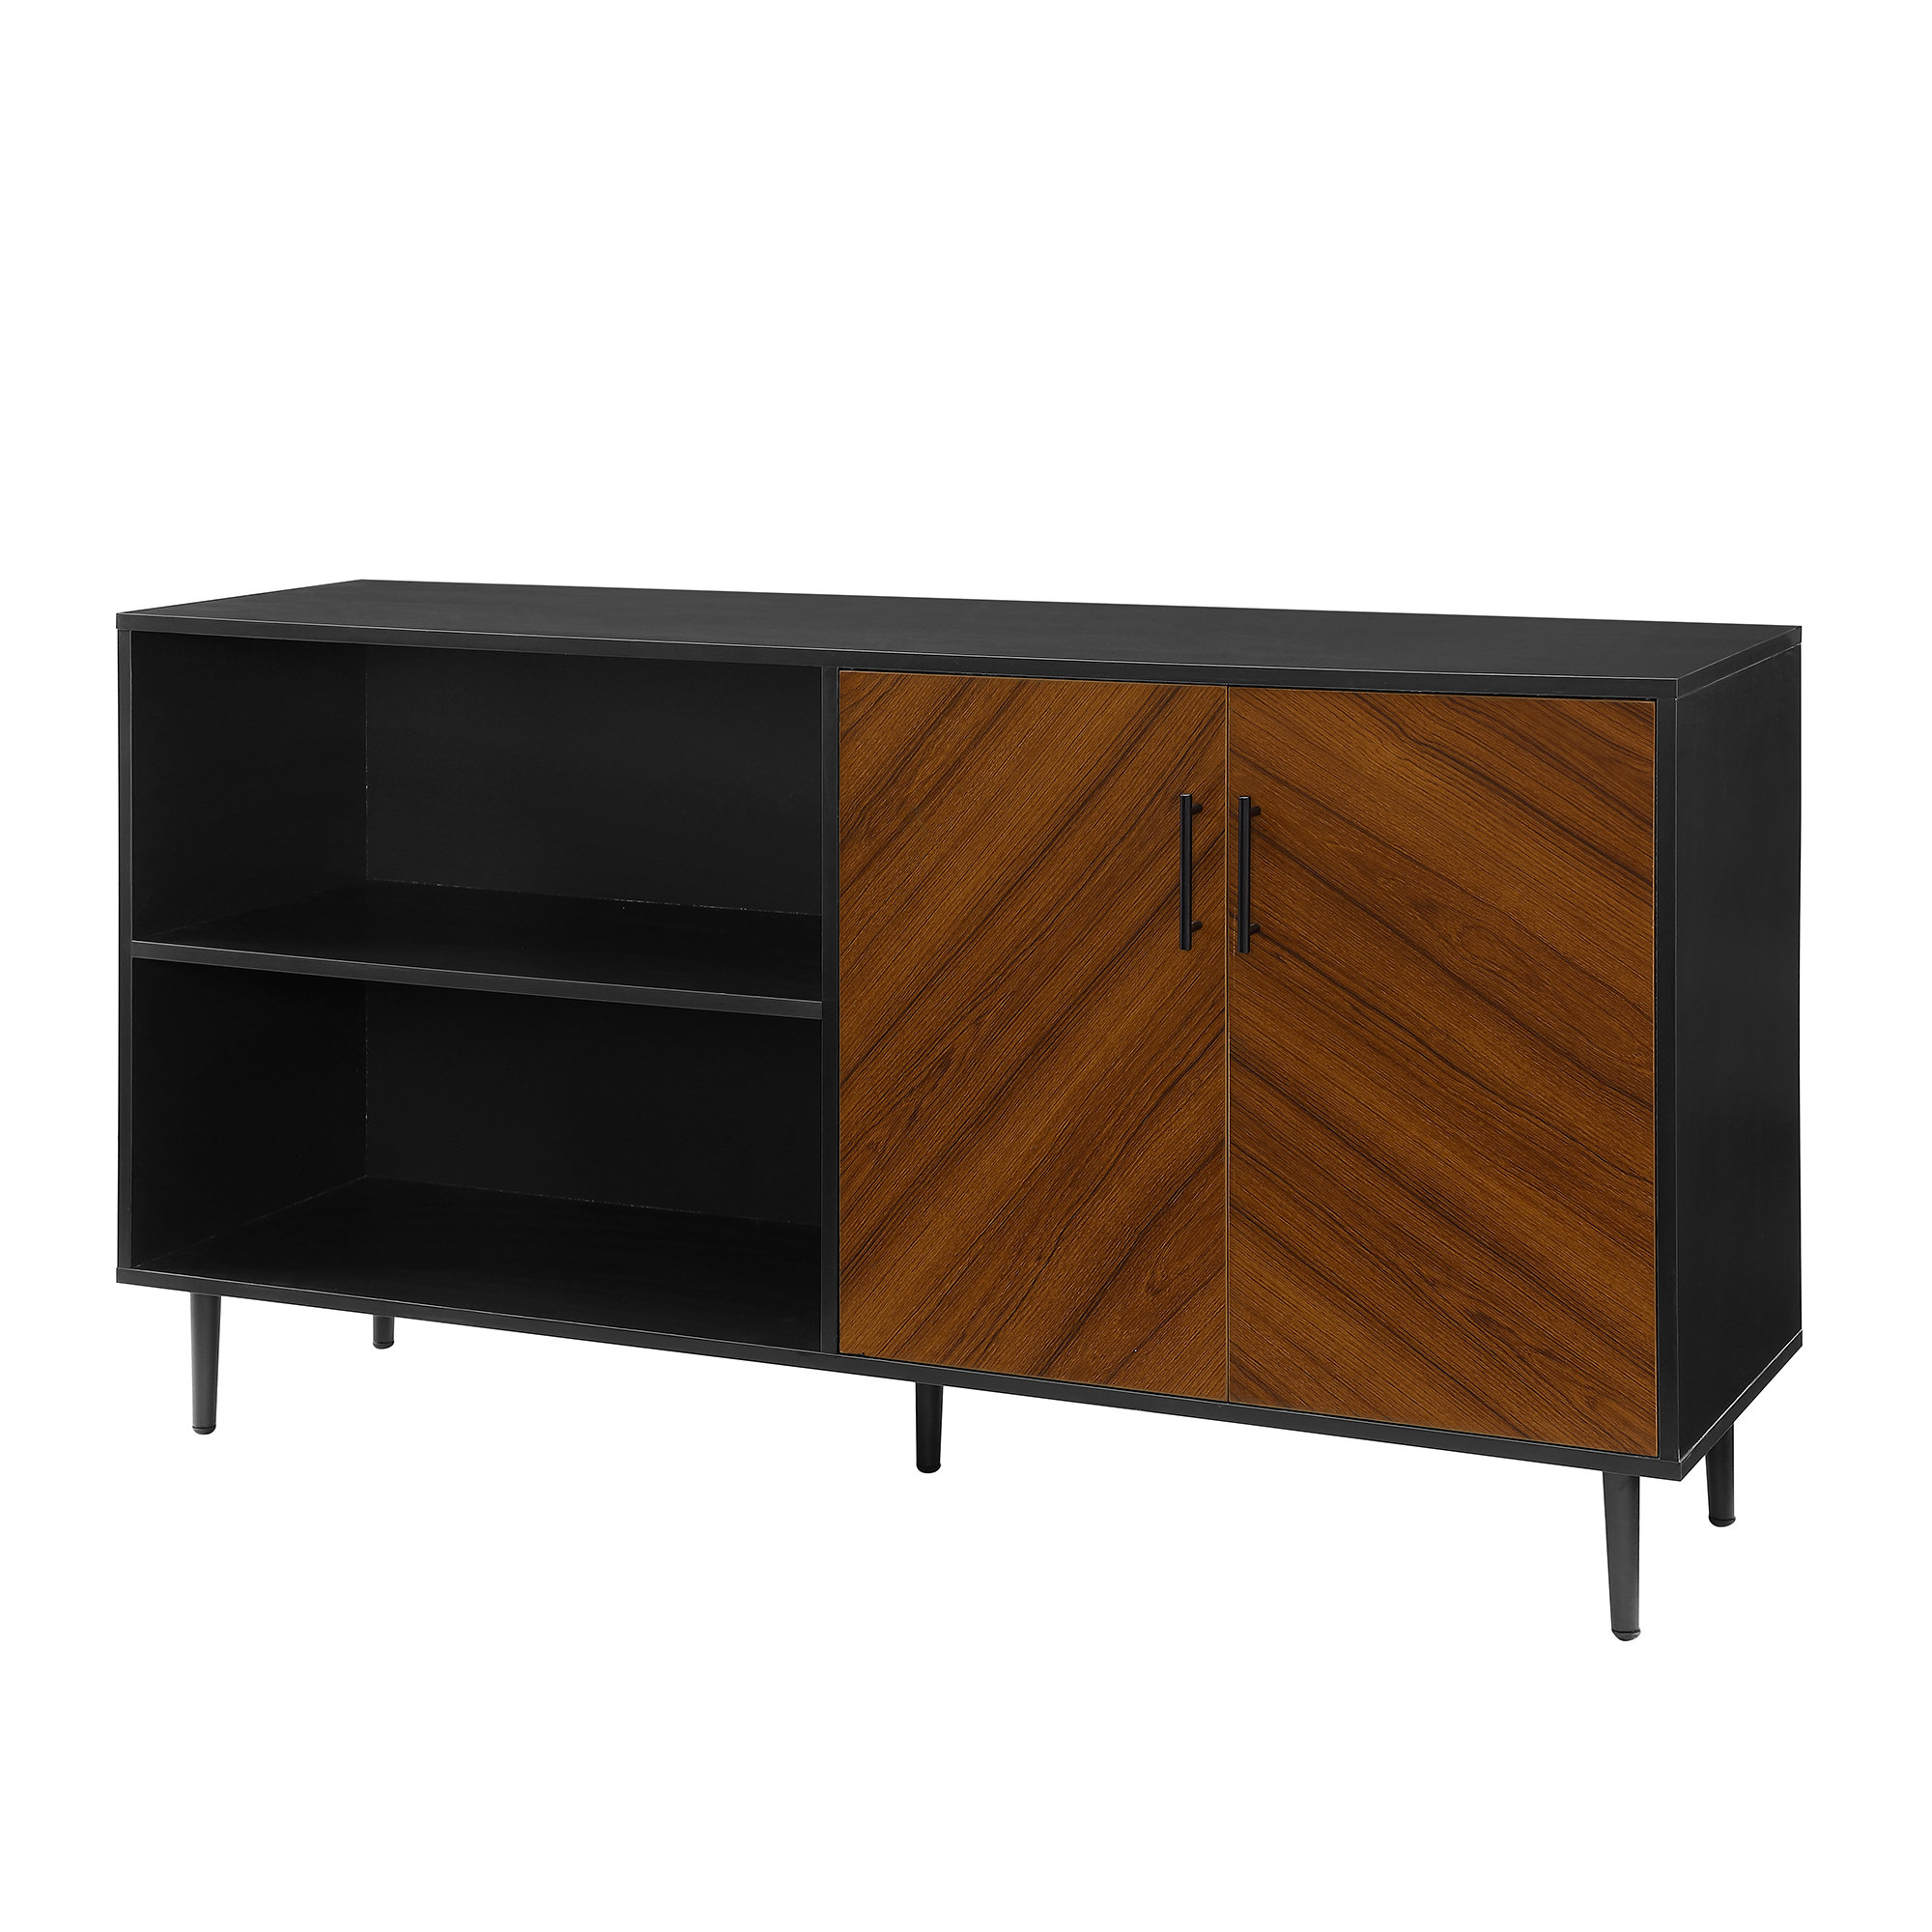 Modern Black Tv Stands (View 10 of 20)